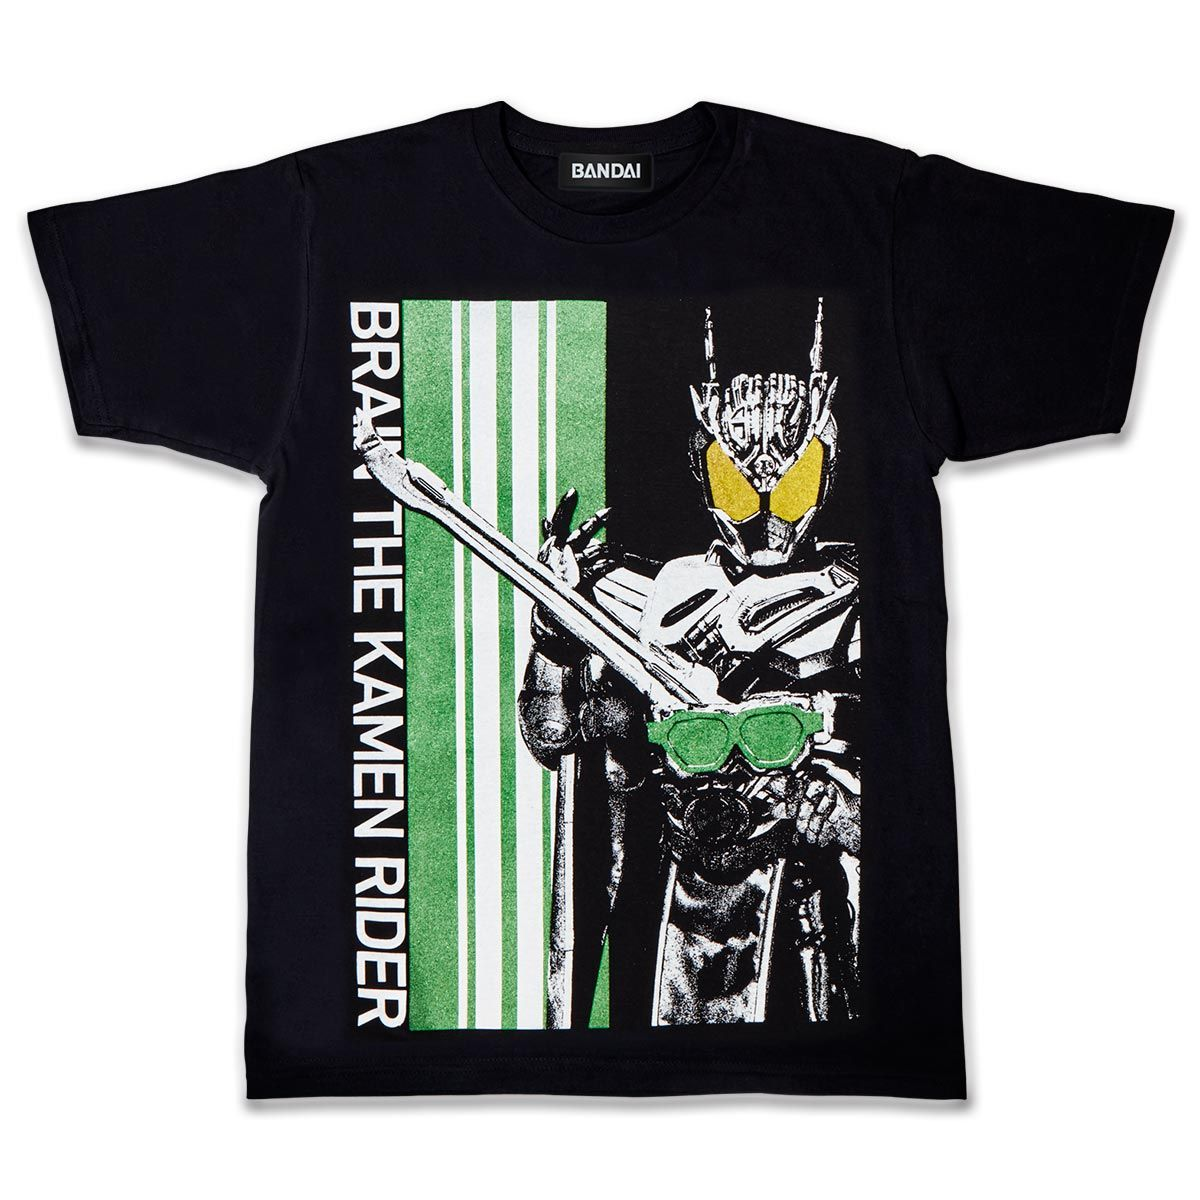 Kamen Rider Brain T-shirt and Handkerchief Set